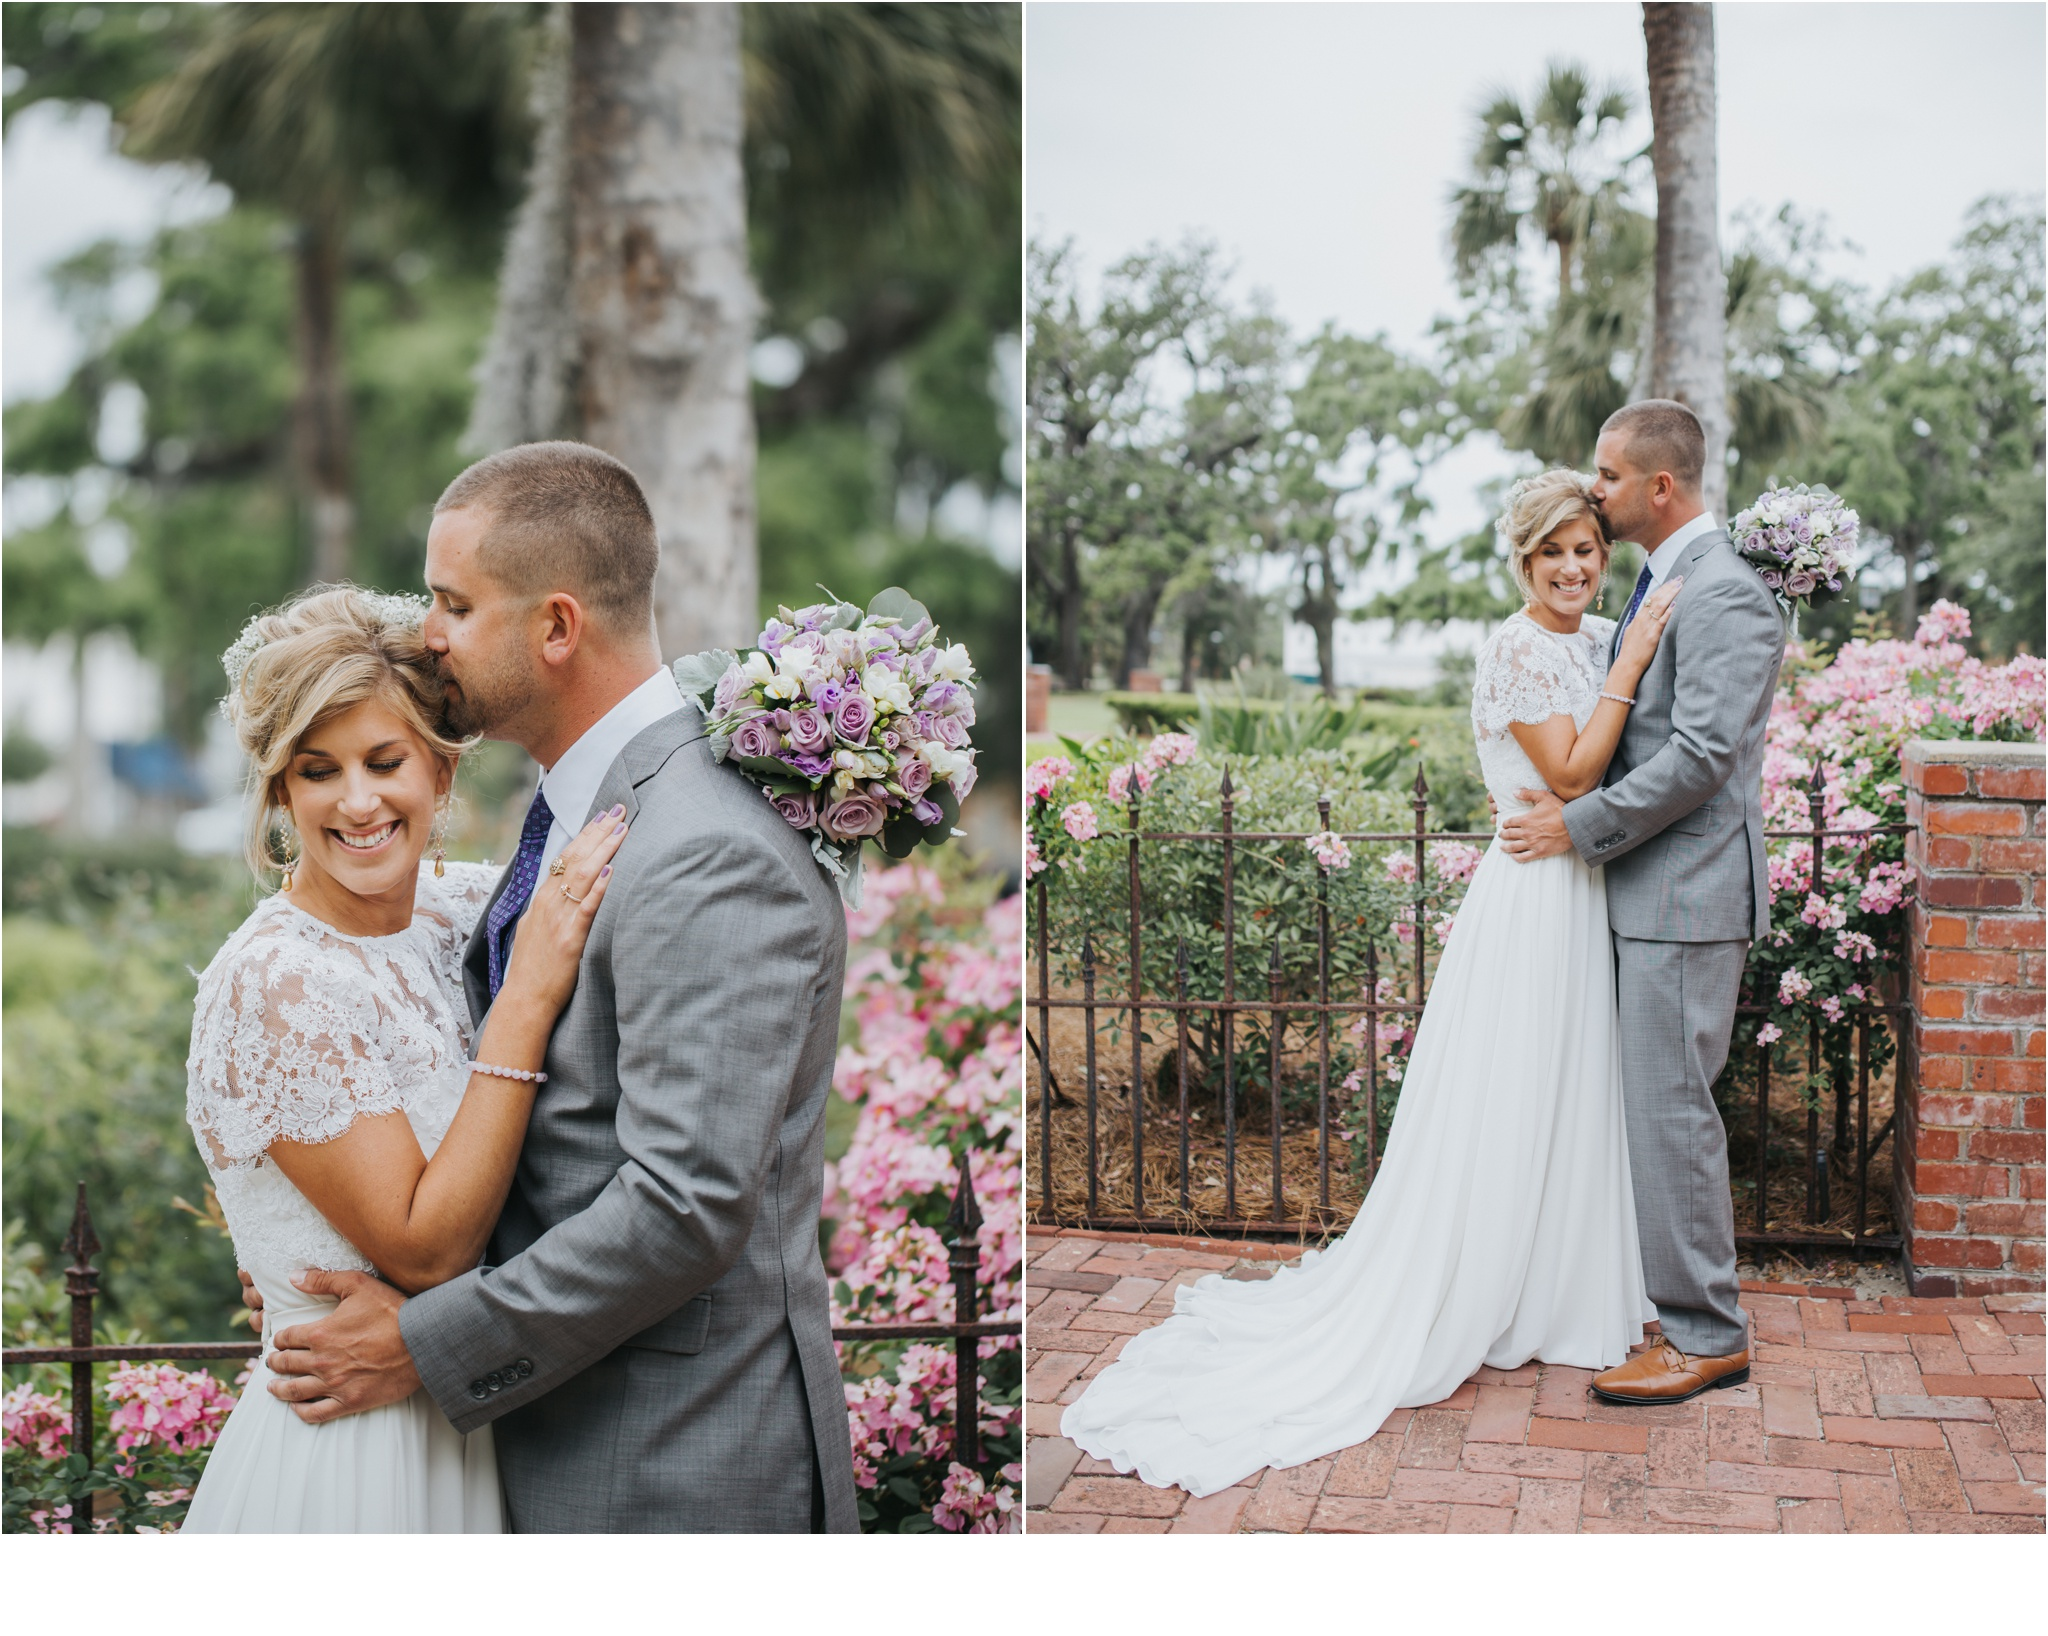 Rainey_Gregg_Photography_St._Simons_Island_Georgia_California_Wedding_Portrait_Photography_1509.jpg